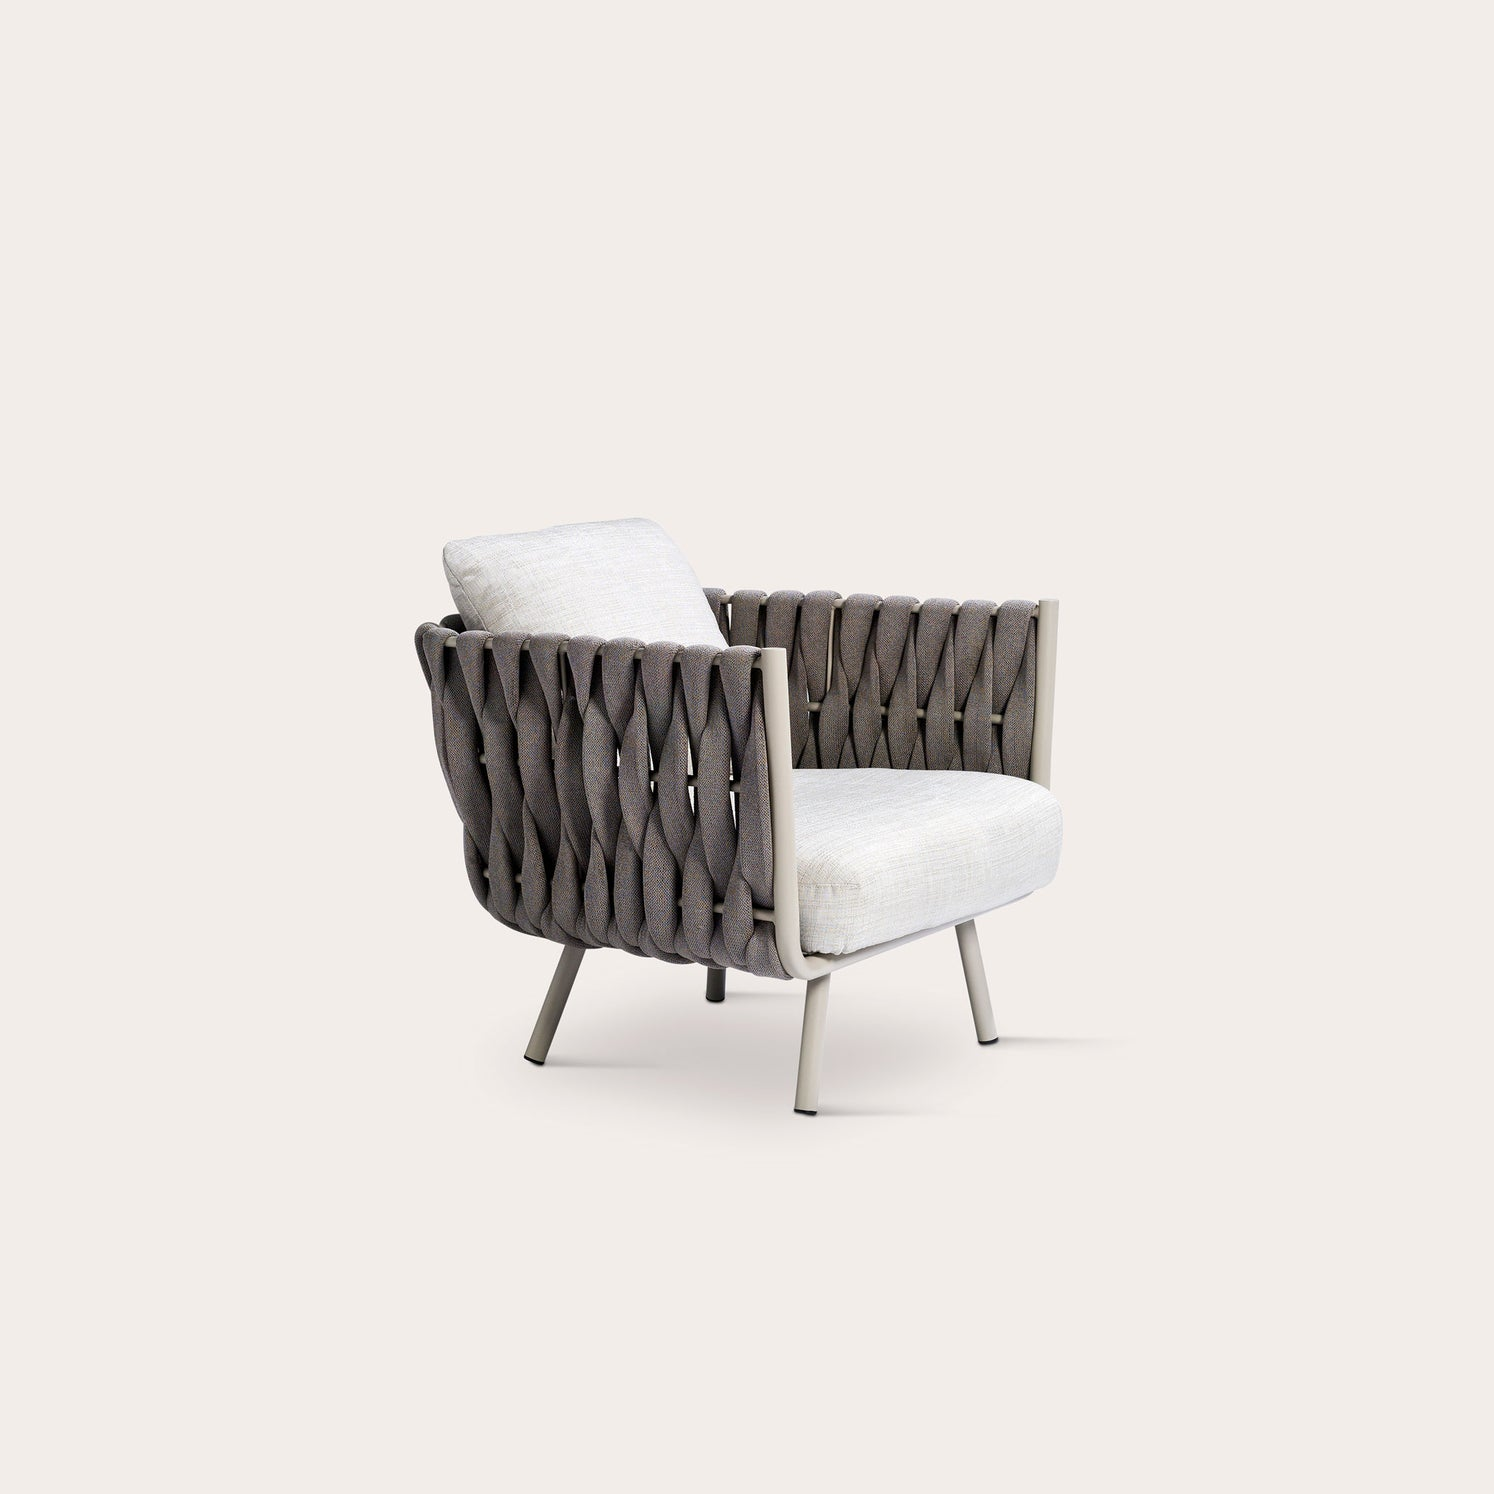 TOSCA Club Chair Outdoor Monica Armani Designer Furniture Sku: 007-200-10854